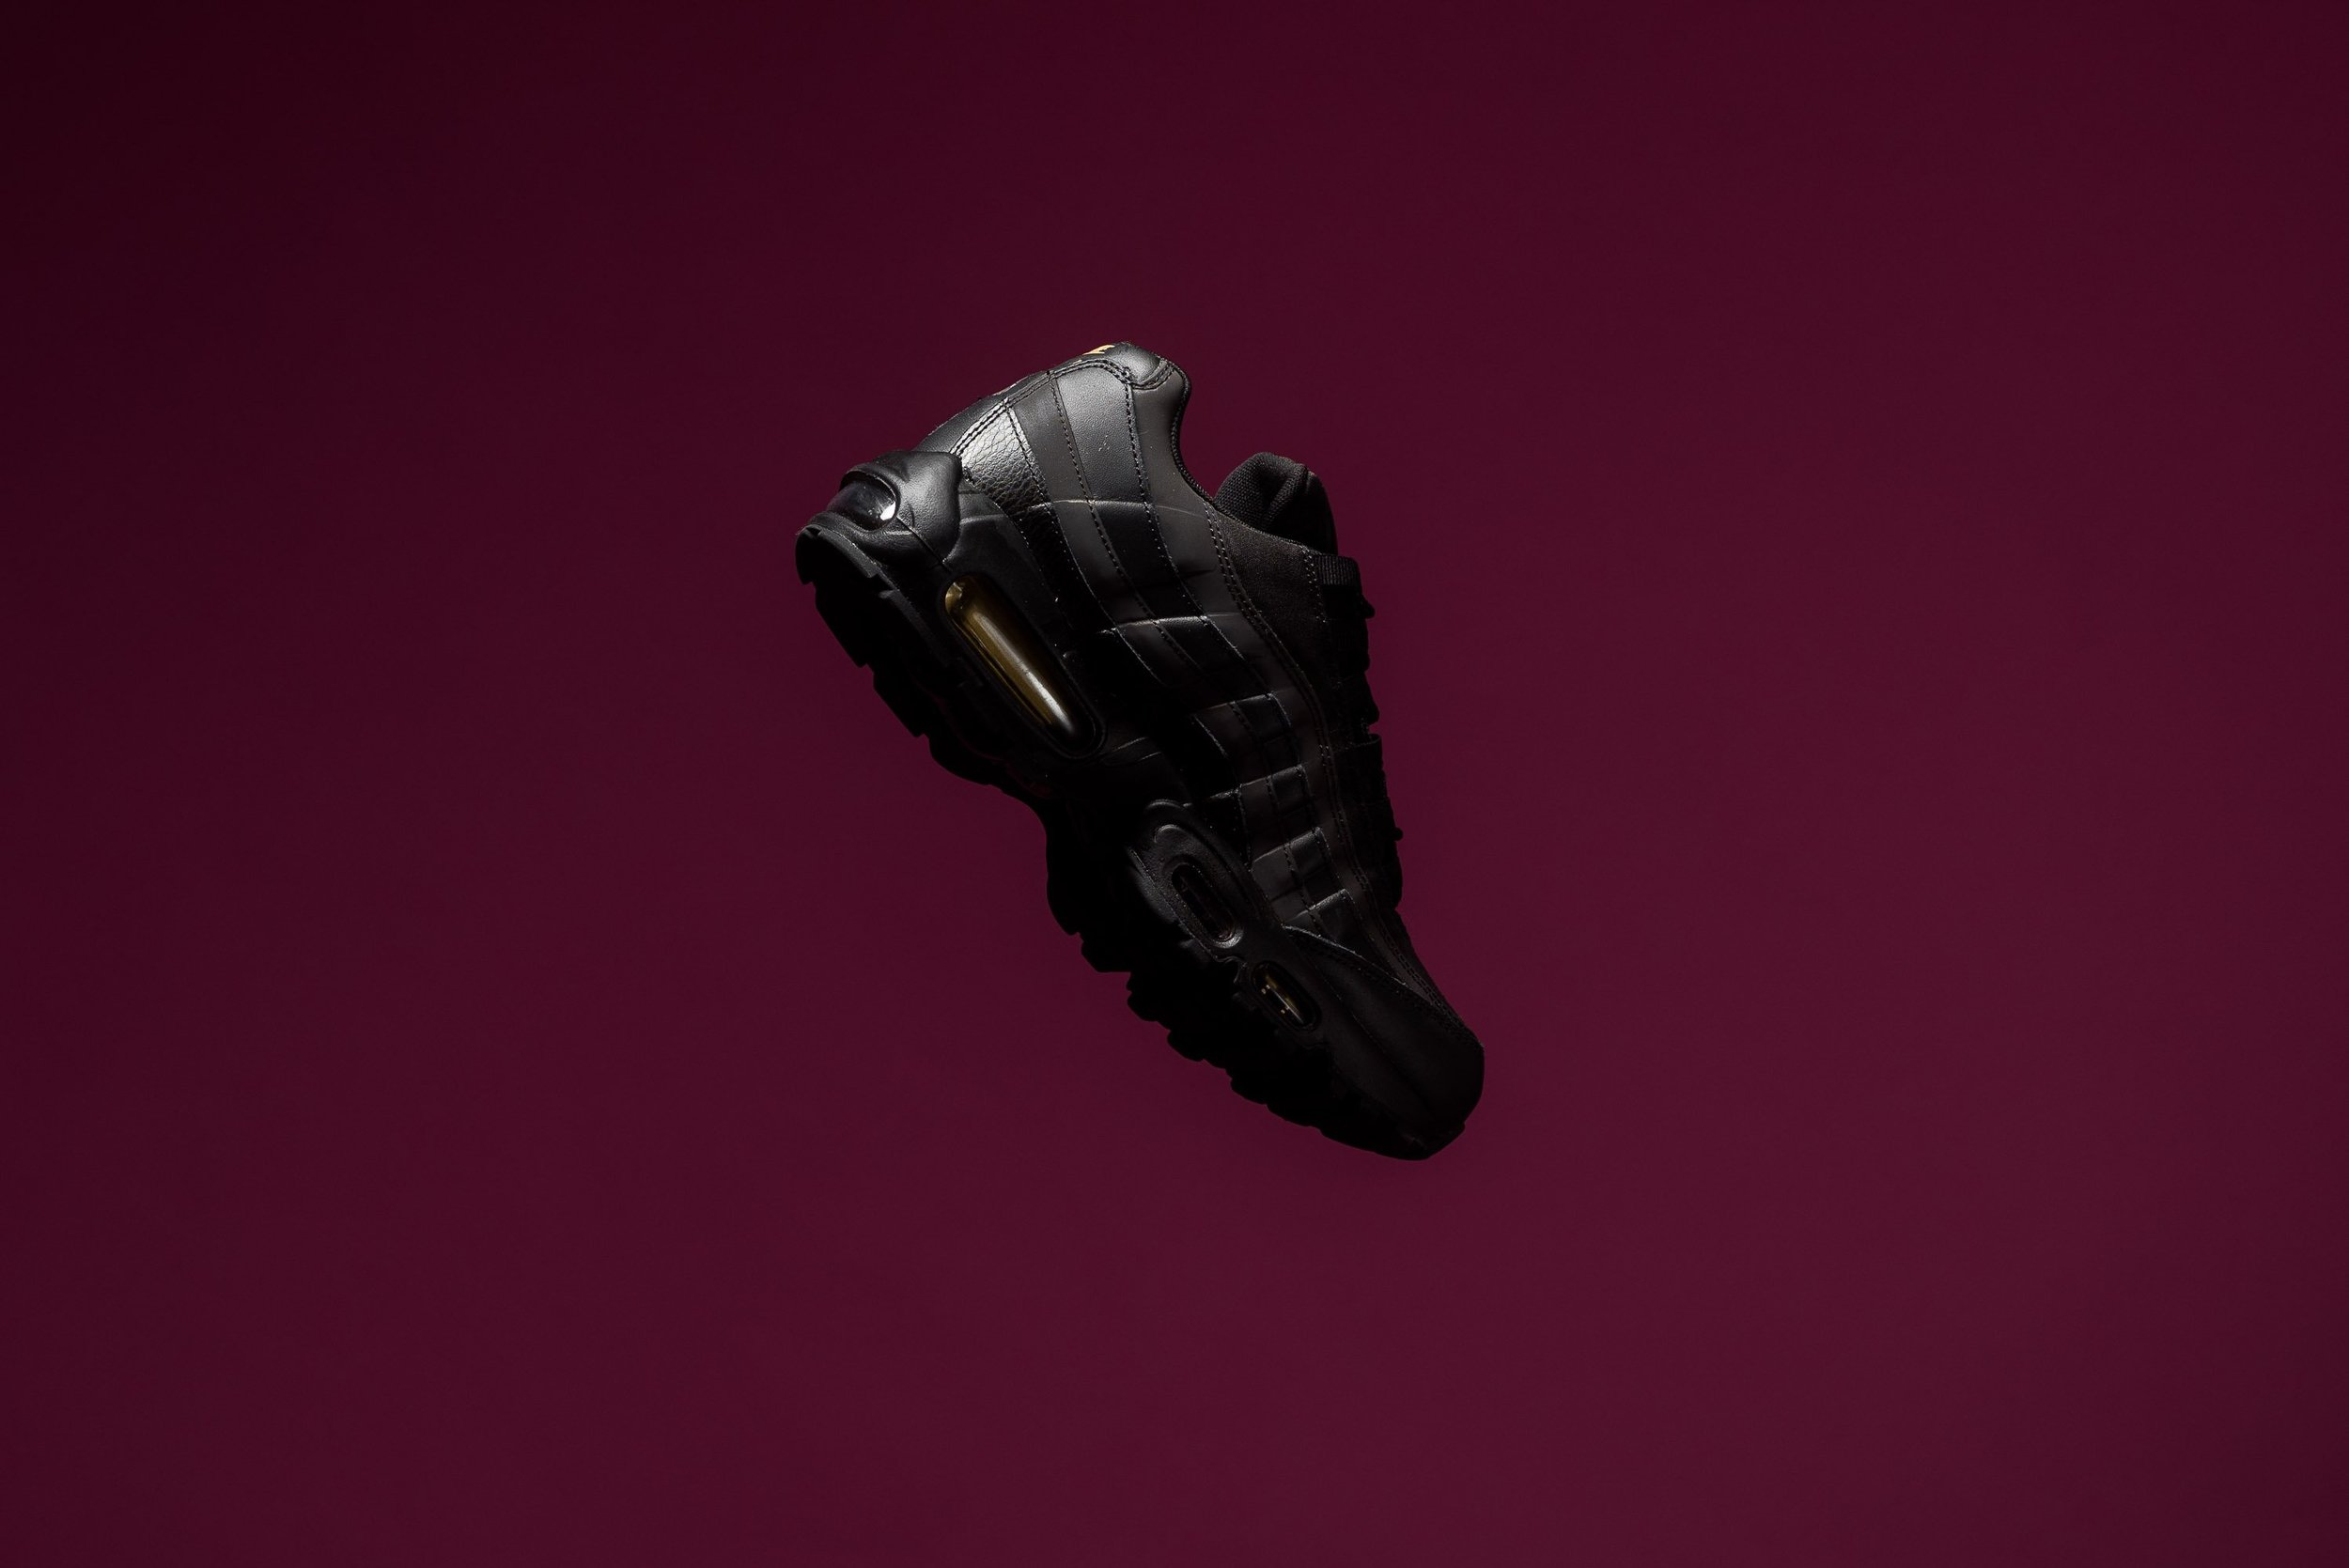 Nike_Air_Max_95_Premium_SE_Black_Metallic_Gold_924478_003_Sneaker_POlitics_-2.jpg